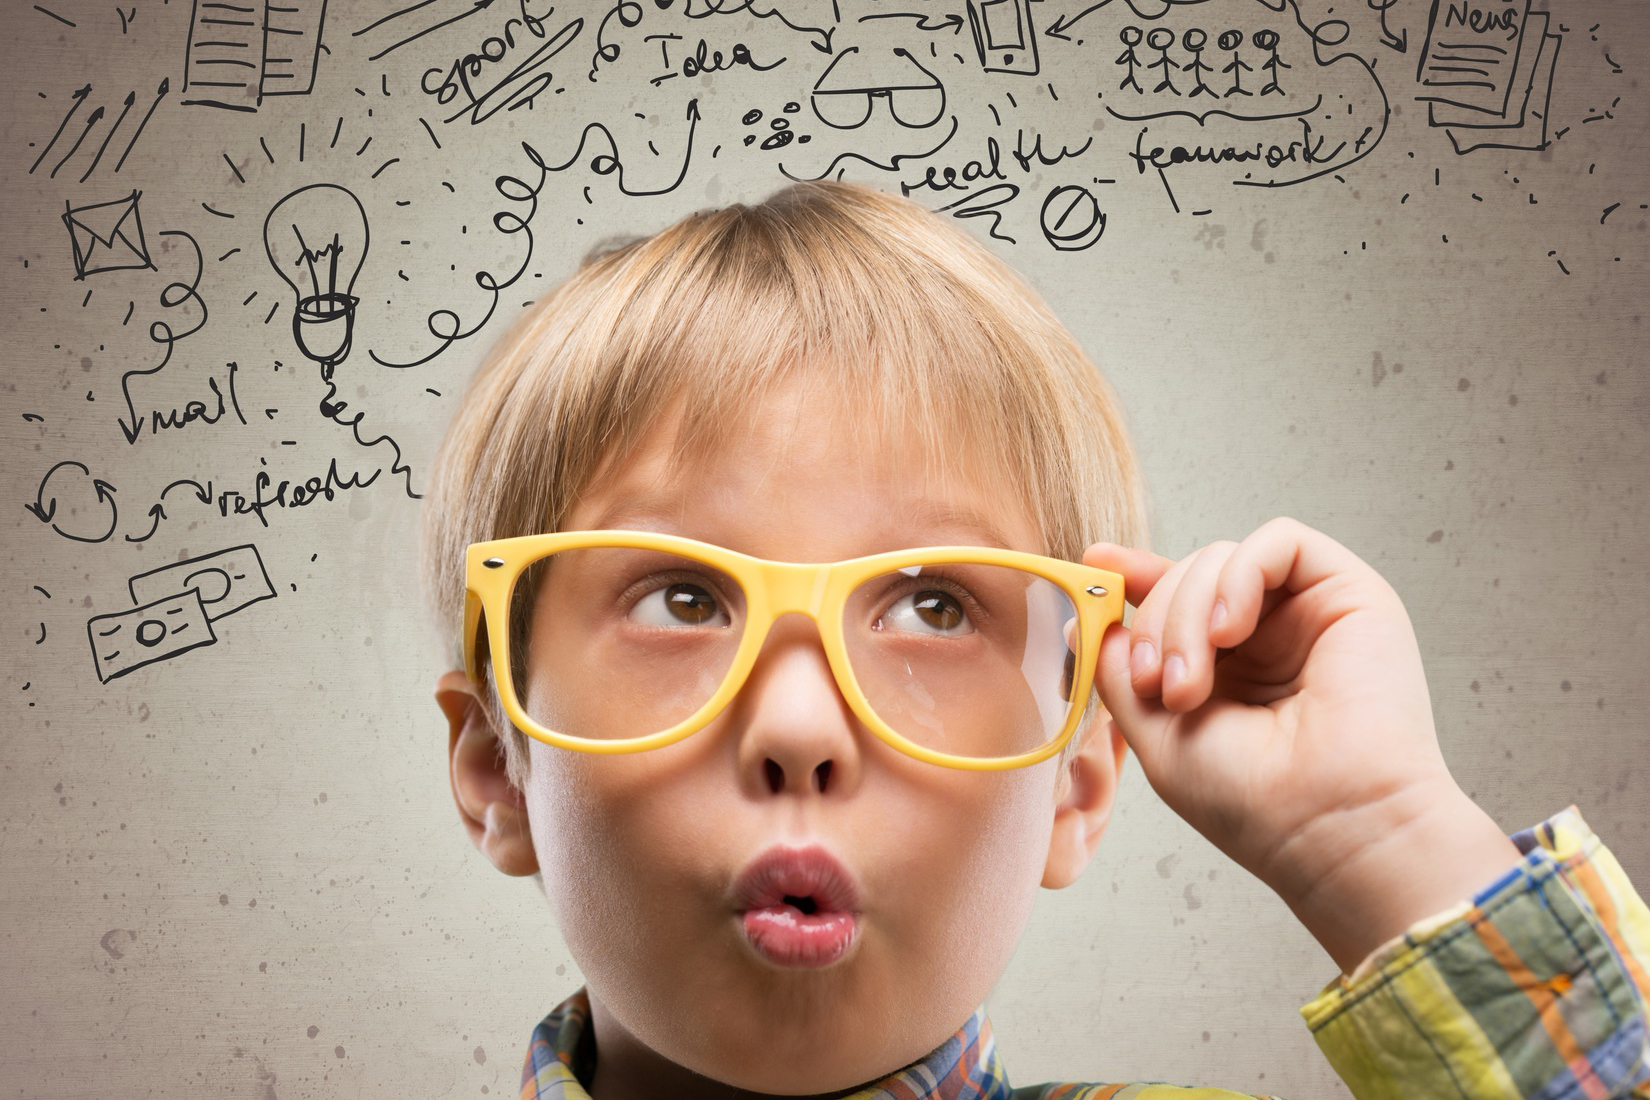 Kid. Thinking child with a blackboard in the background